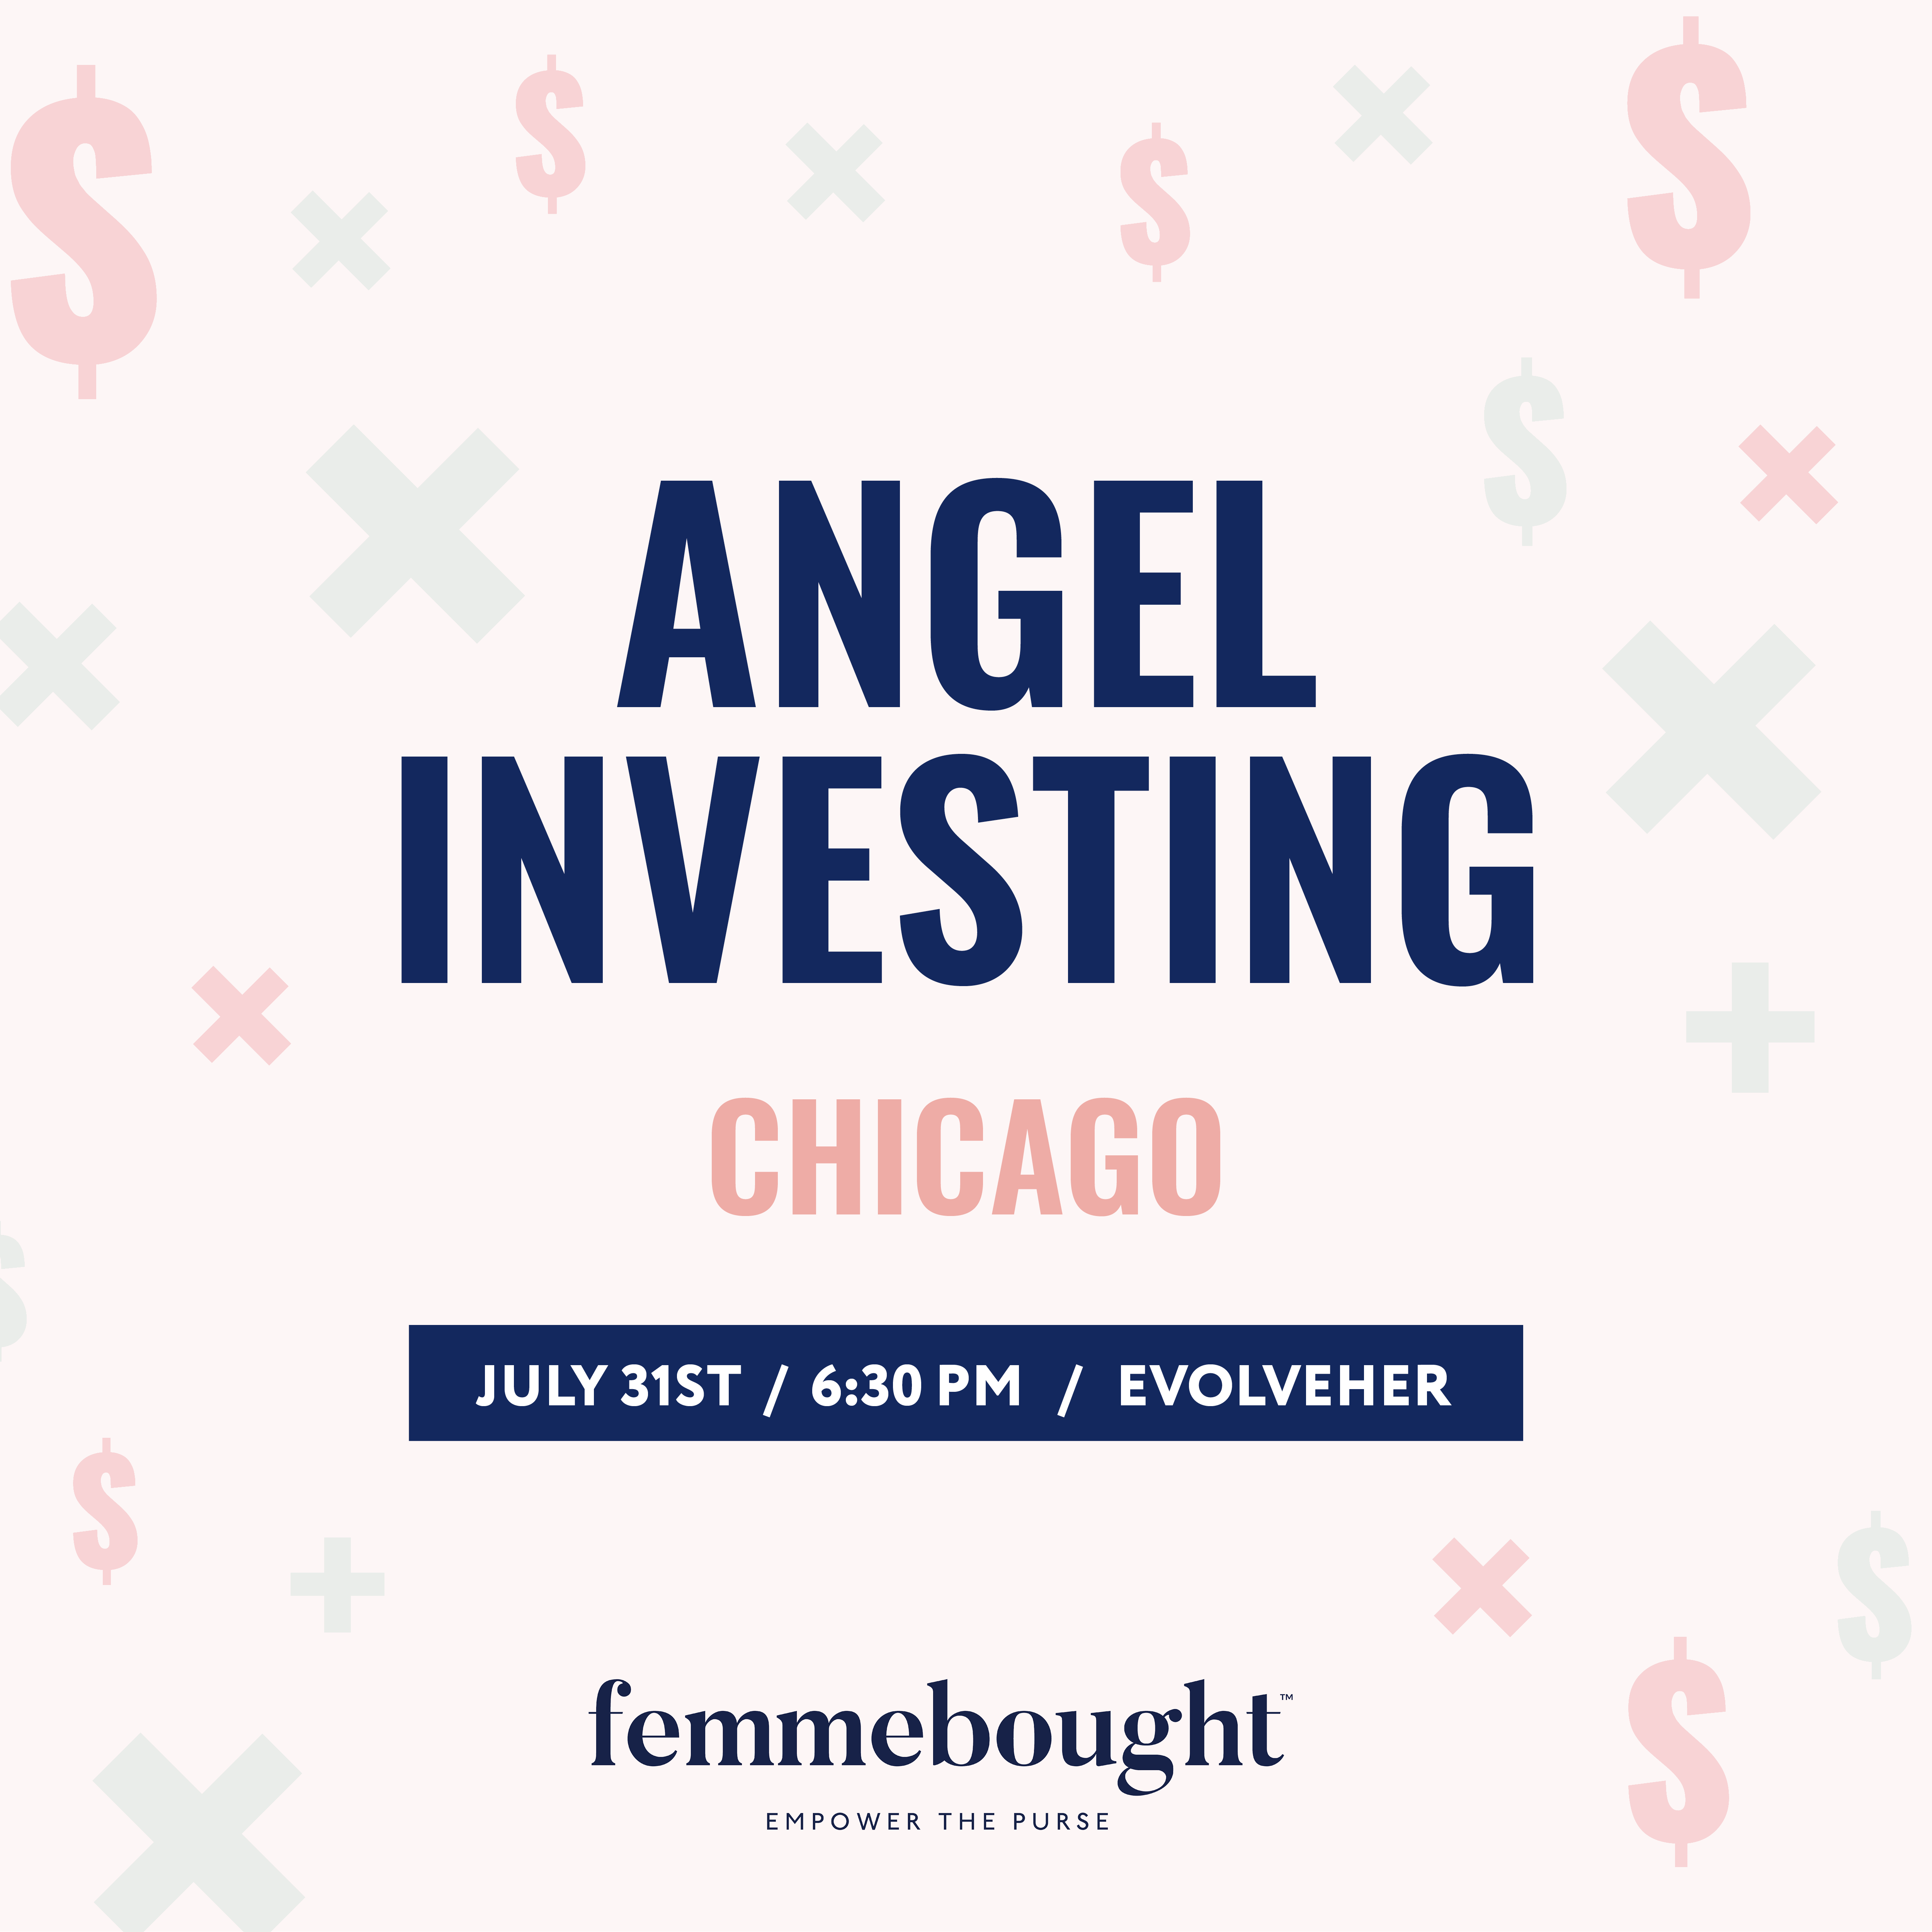 AngelInvesting_CHICAGO_Graphics_Instagram